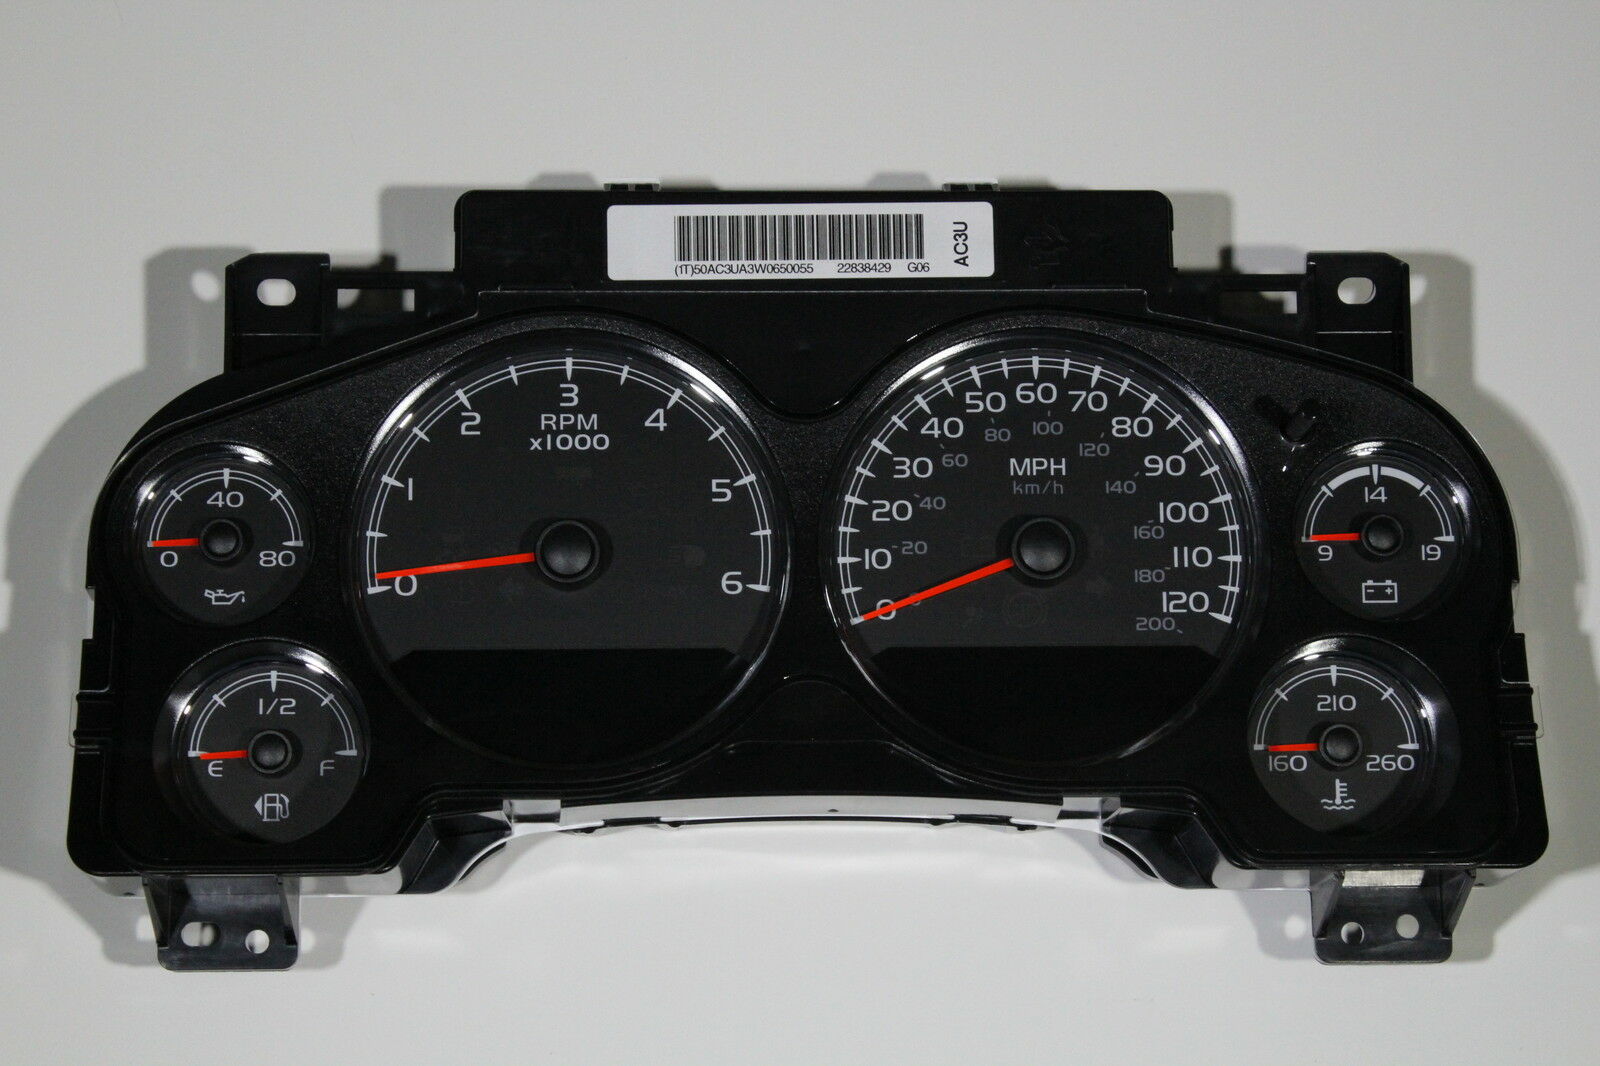 Silverado 2003 chevy silverado dash cluster : Used GMC Sierra 1500 Instrument Clusters for Sale